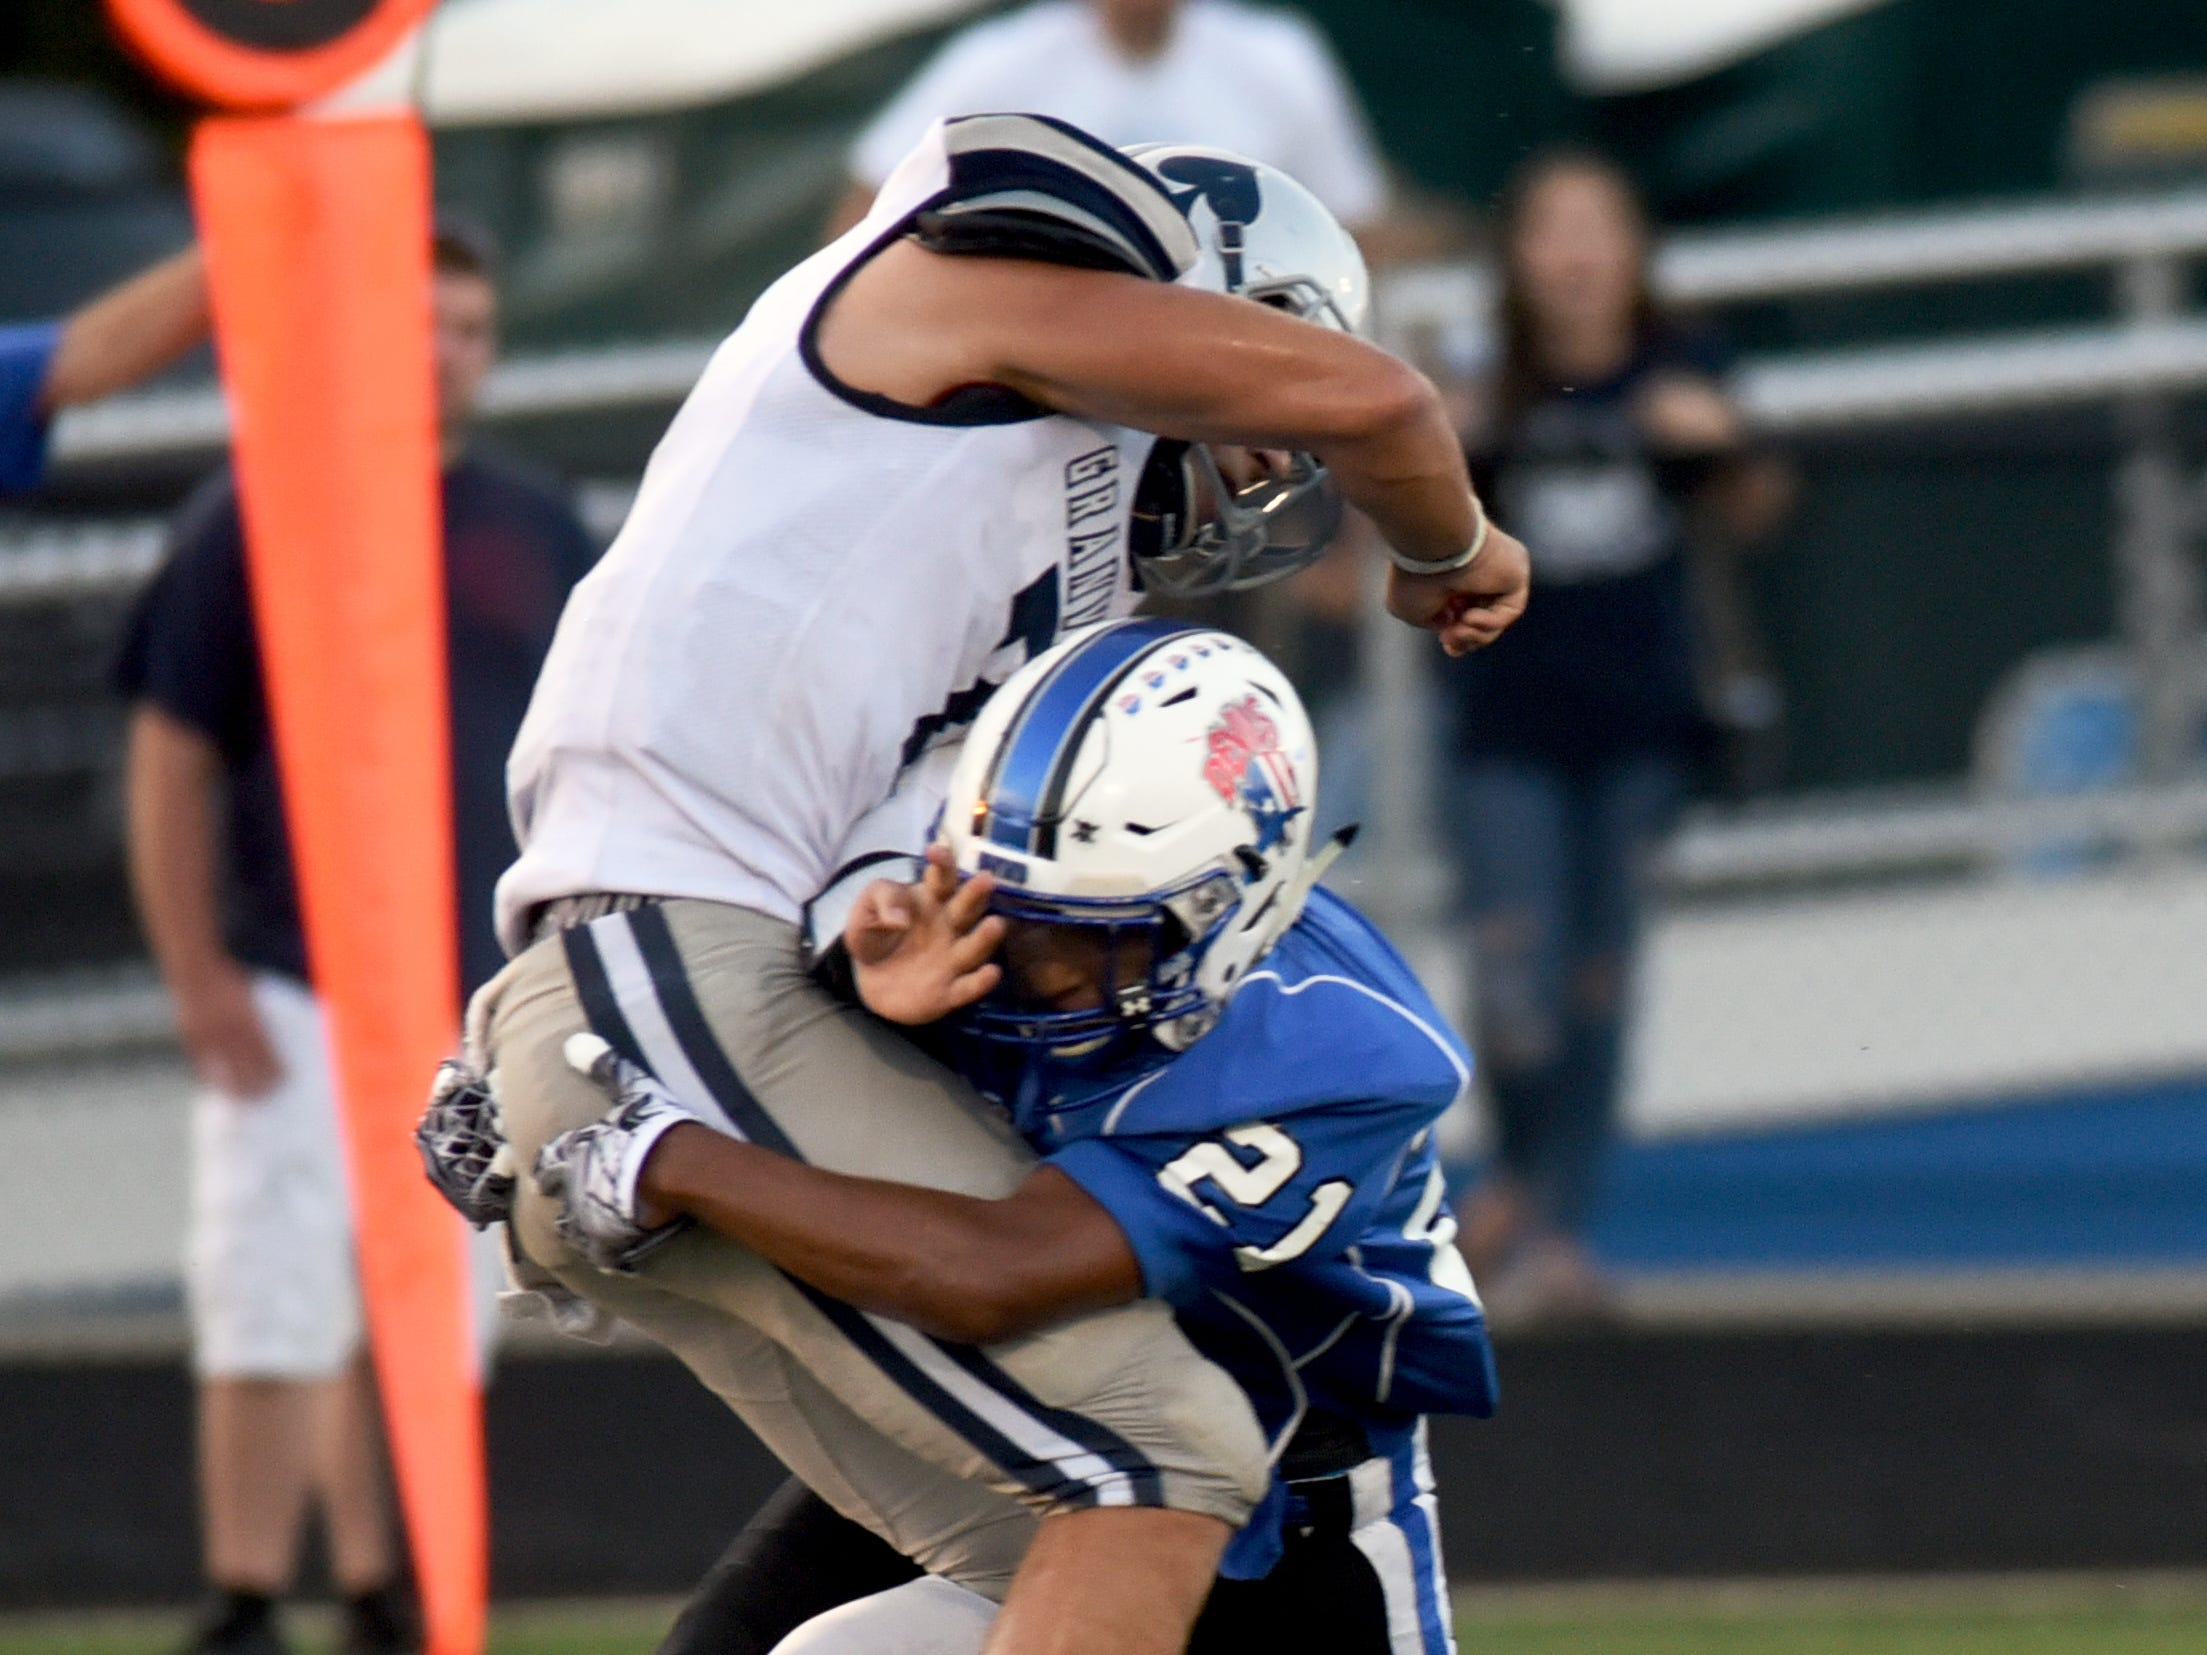 Zanesville's Julius Murphy lays a hit on Cameron Crouch during the second quarter. Granville held on for a 17-14 win on Friday night at John D. Sulsberger Memorial Stadium.